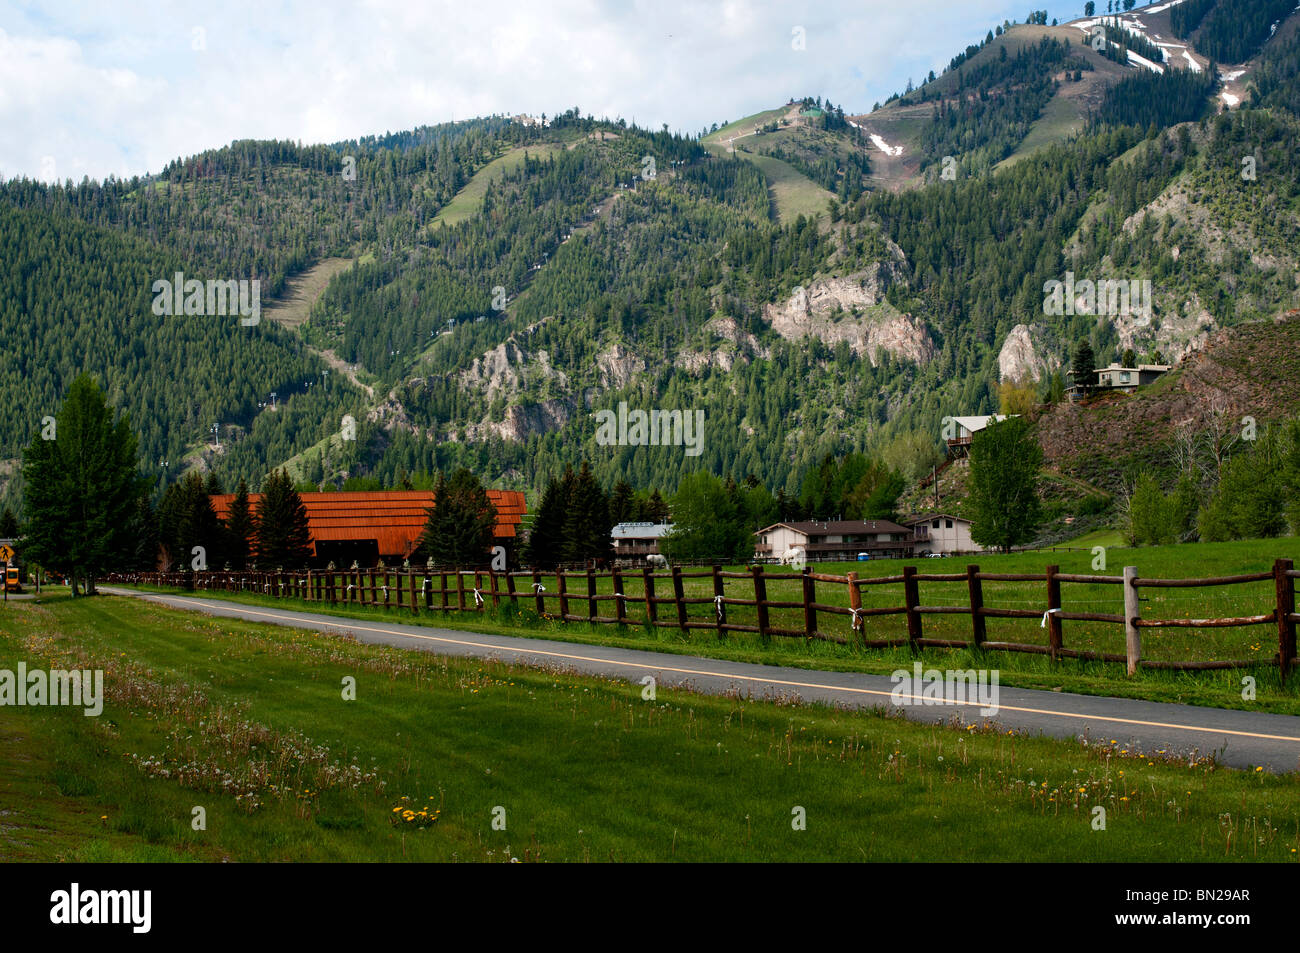 The walking trail along the road from Ketchum to Sun Valley, looking West toward the ski slopes - Stock Image